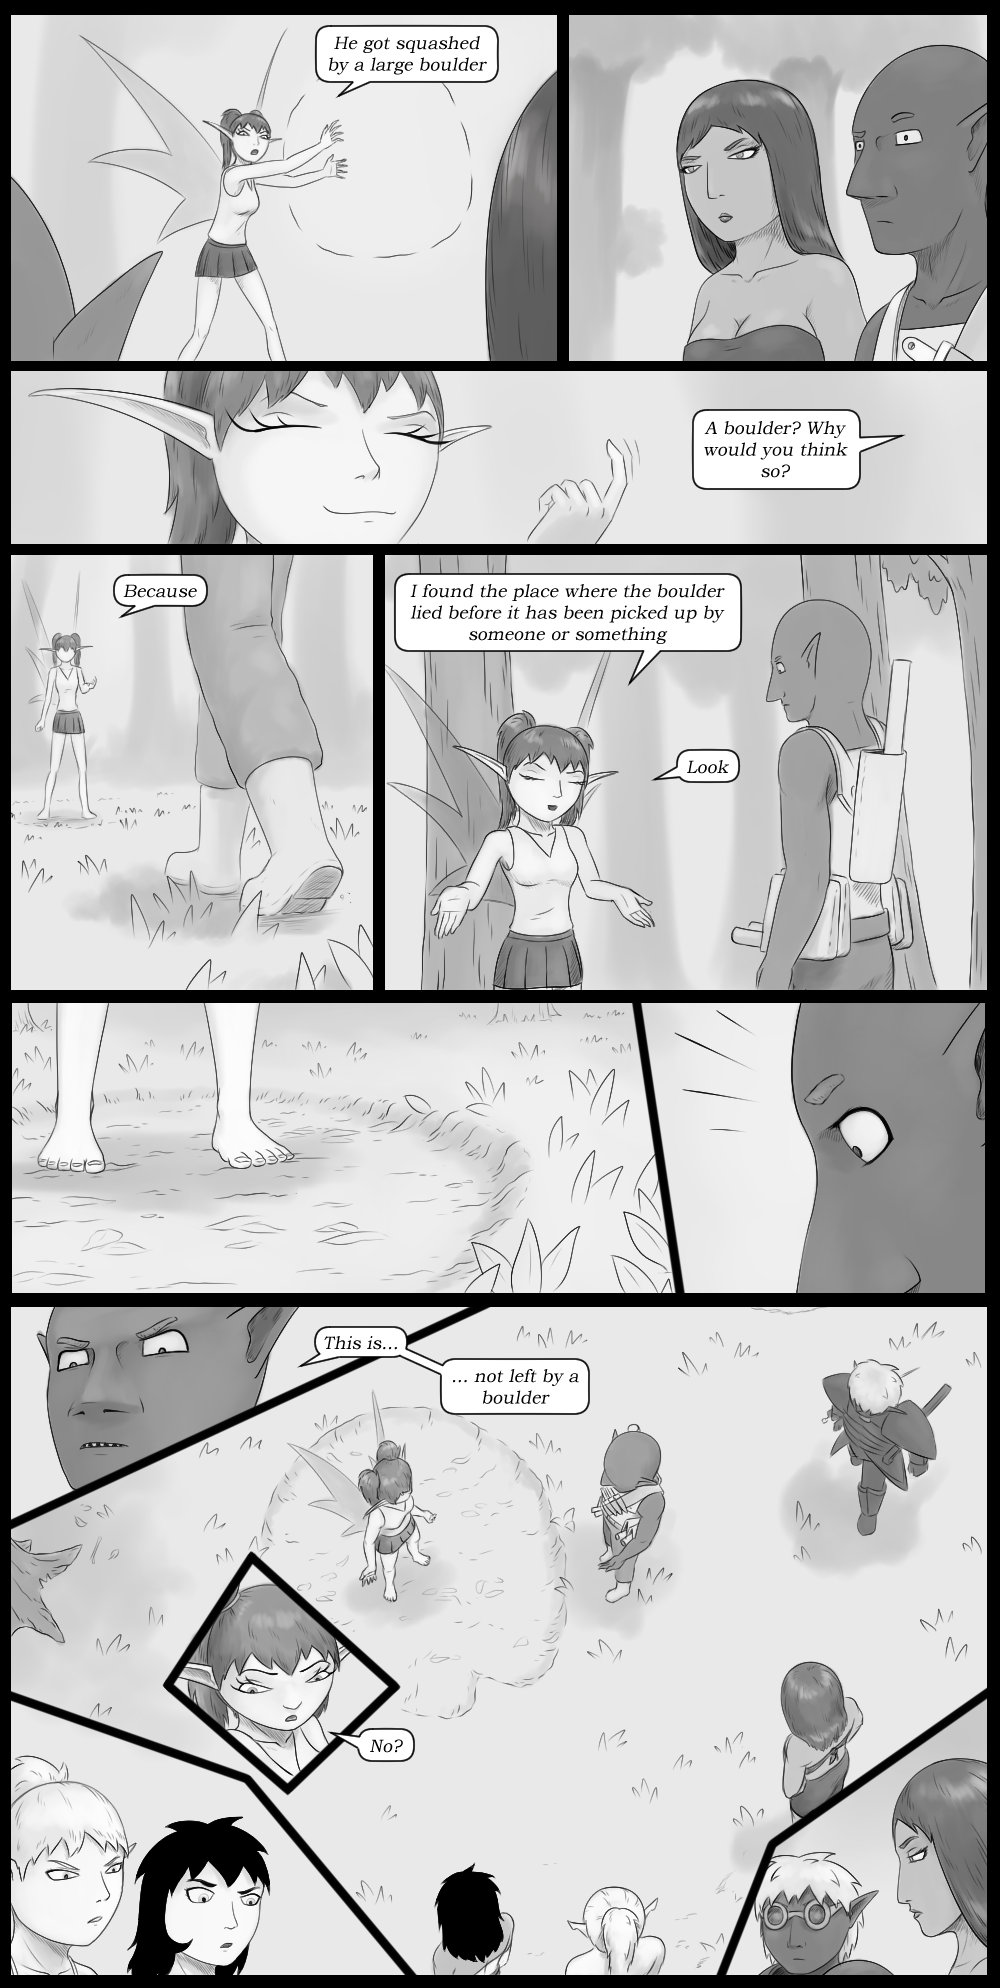 Page 57 - What Actually Happened, According to Rasmiel